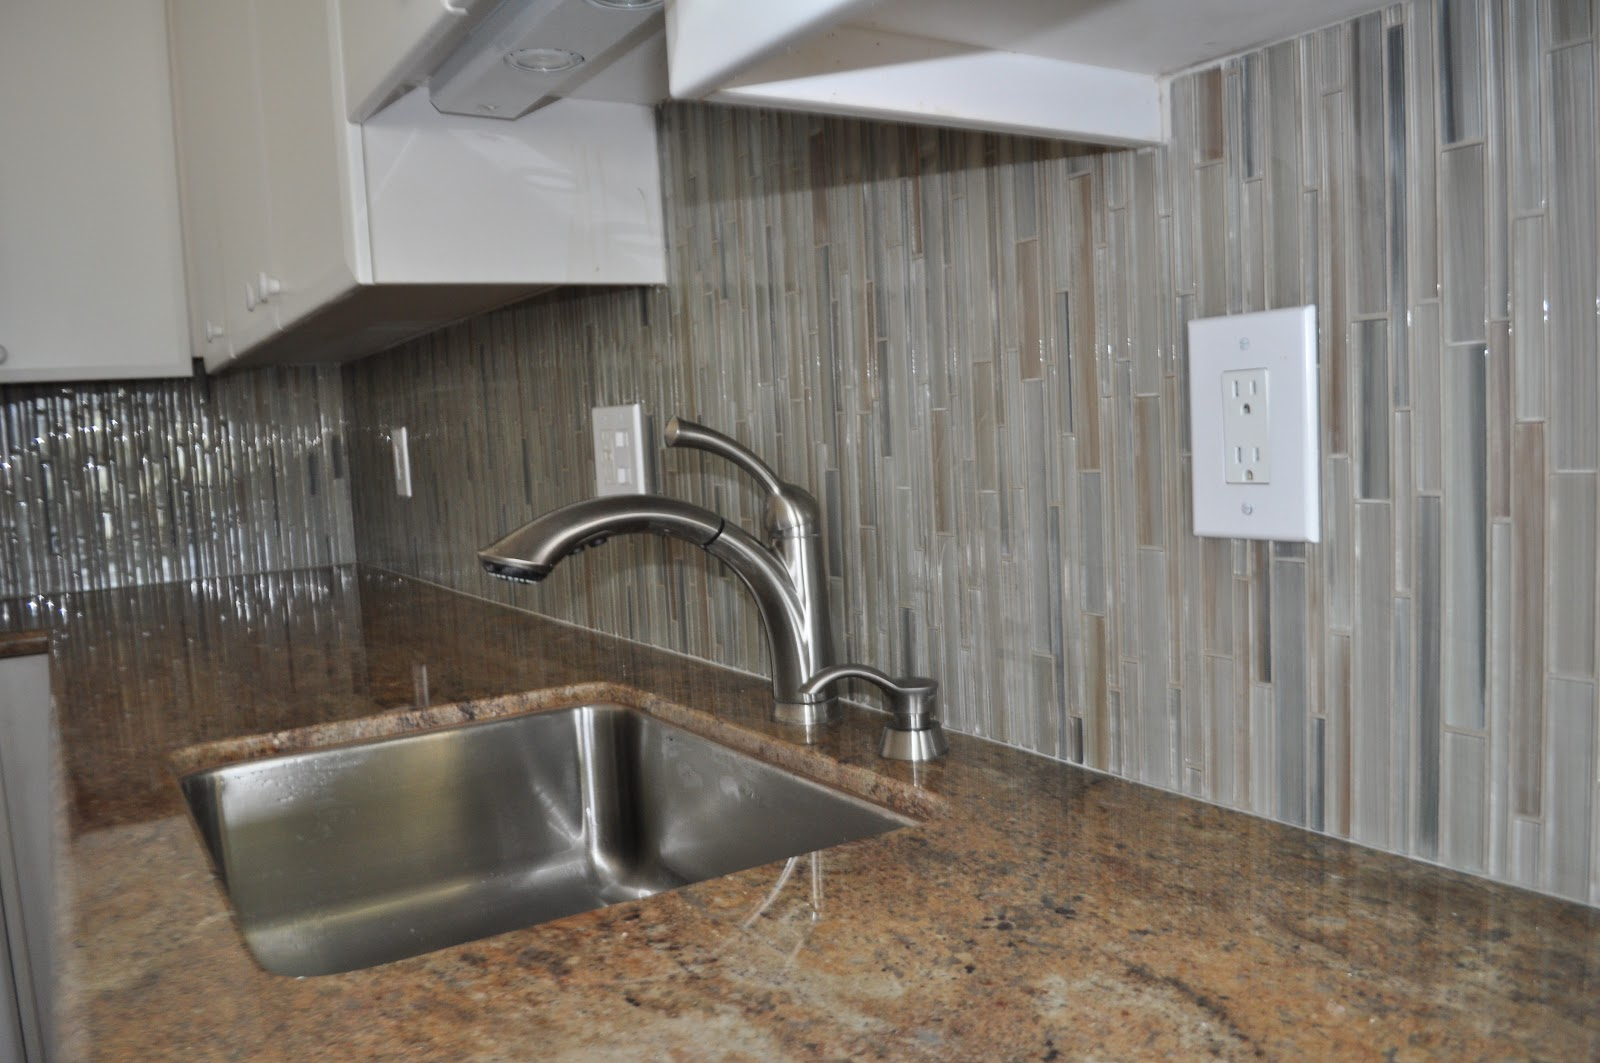 metal glass wall tiles mosaic tile kitchen backsplash Wall Tile Examples and Ideas Marble bath Mosaic Trask Vertical Glass